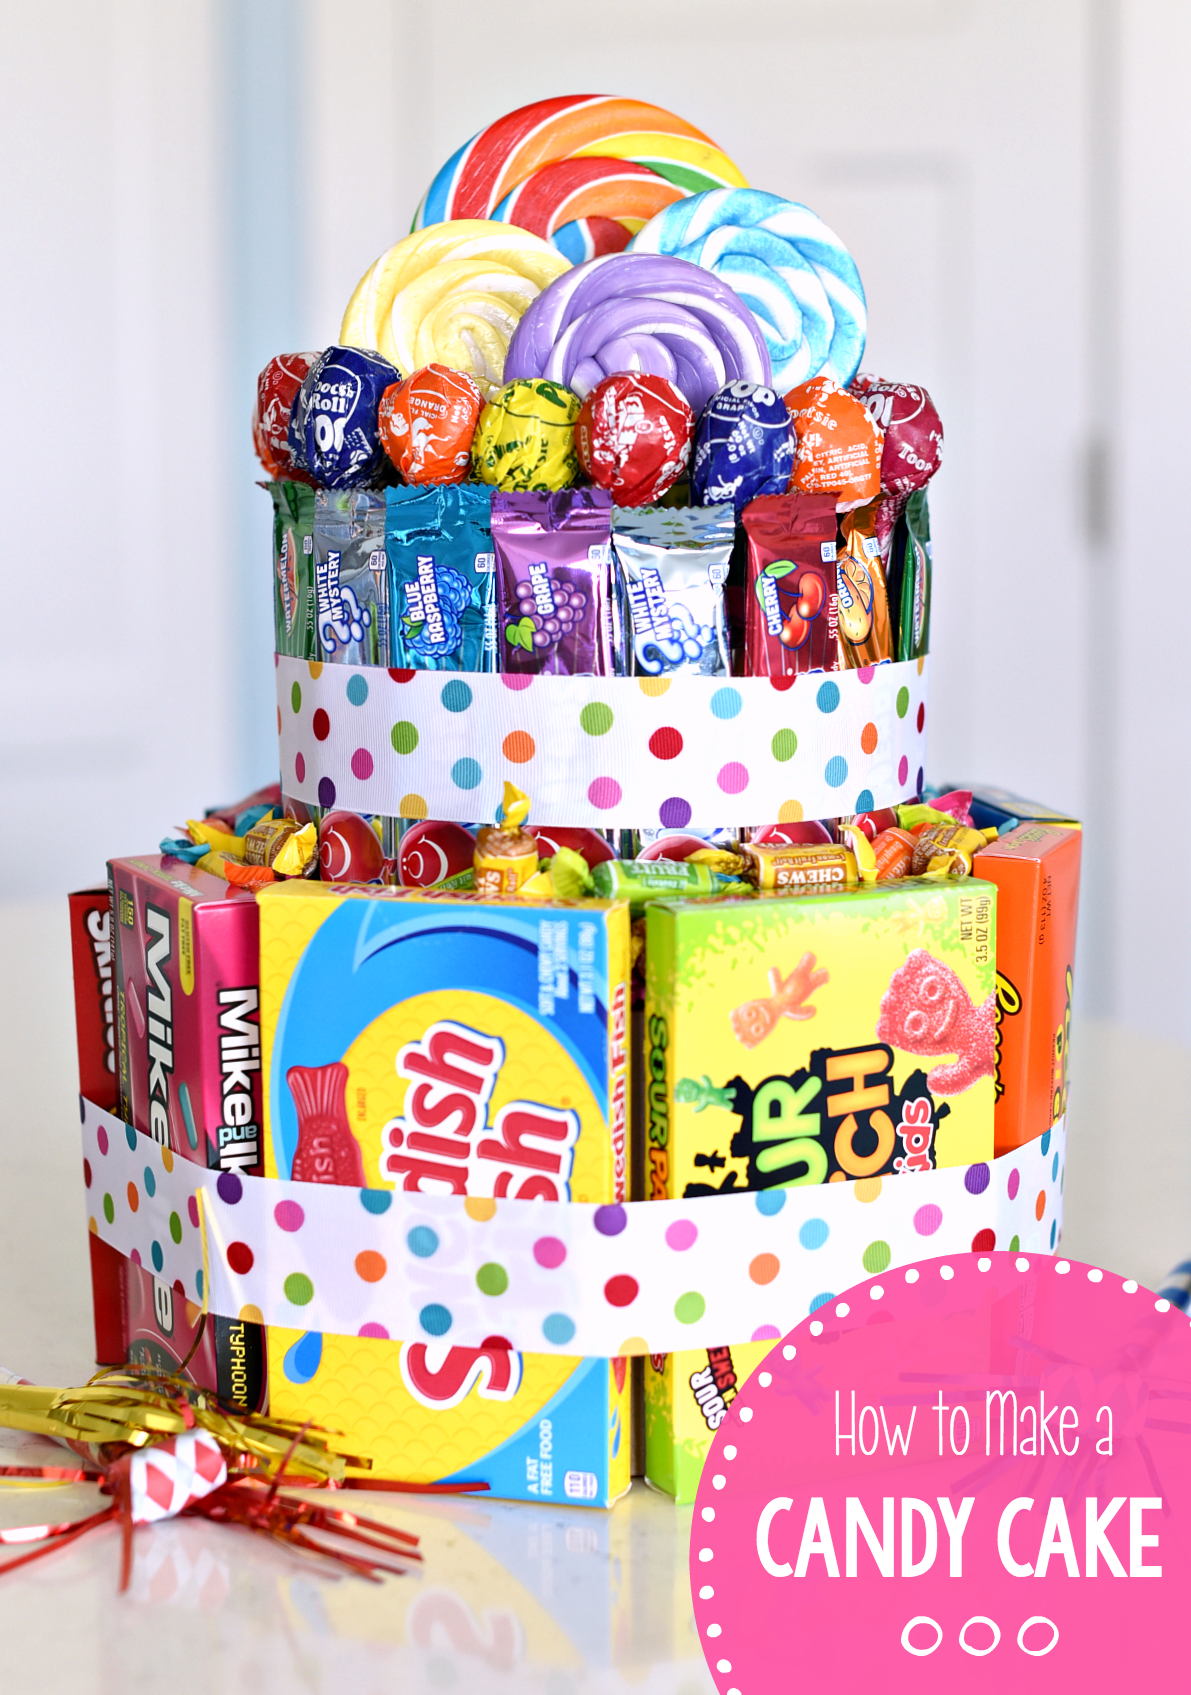 How to Make a Candy Cake for Birthdays or Special Occasions